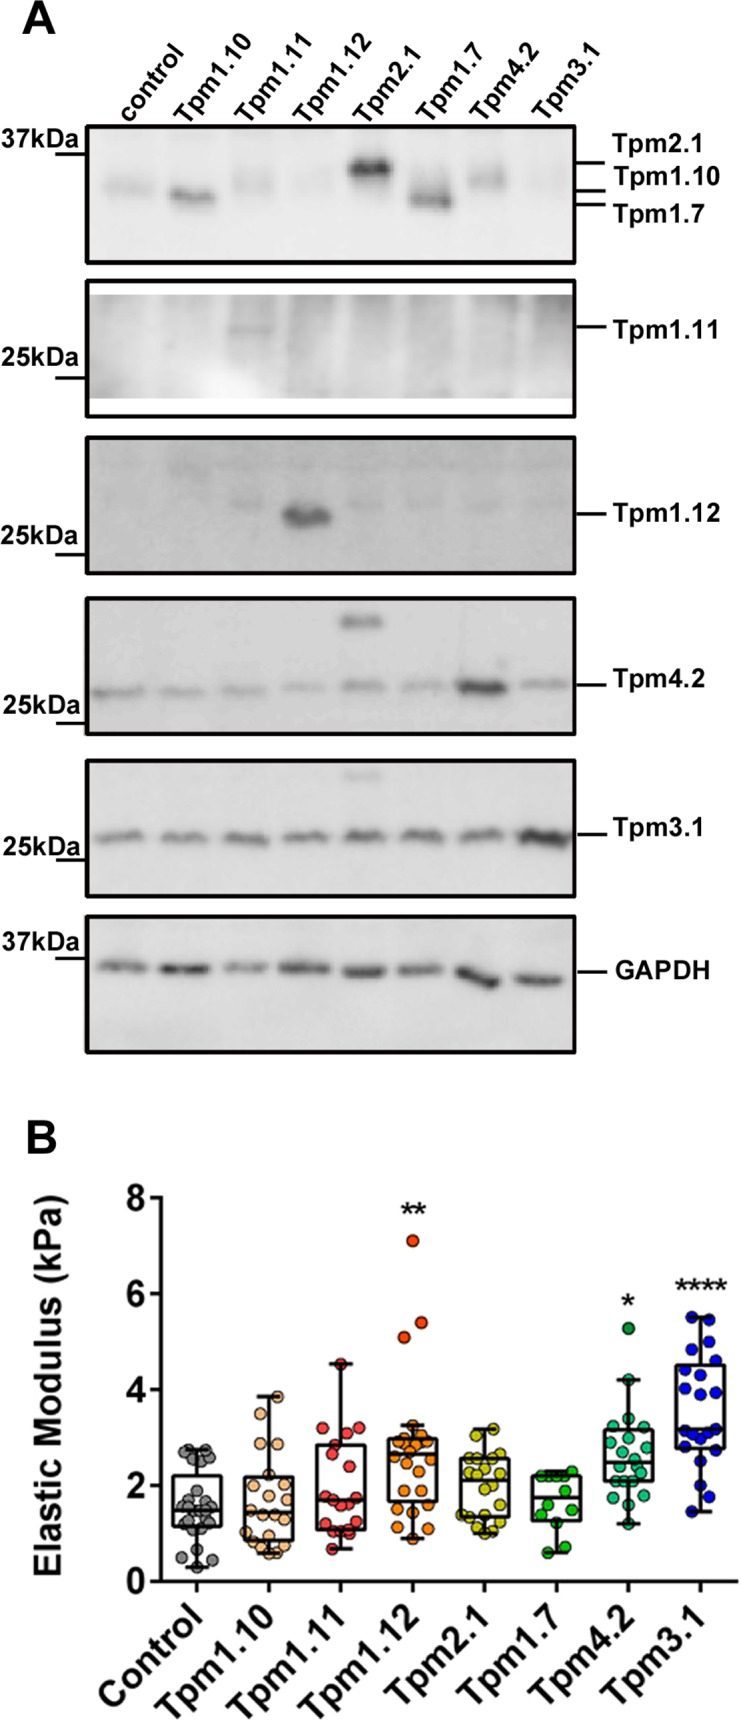 Distinct Tpm isoforms differentially impact on the elastic modulus of the cell. Tpm-overexpressing clones were generated by the stable transfection of Tpm containing vectors. (A) 10 μg of total cellular protein isolated from the Tpm- clones was analysed by SDS-PAGE followed by western blotting. Shown are representative blots probed with the Tm311 (detecting Tpm2.1, Tpm1.10, Tpm1.7), α/9b (Tpm1.11), α/9c (Tpm1.10, Tpm1.12), δ/9d (Tpm4.2), γ/9d (Tpm3.1), and GAPDH antibodies. (B) The elastic (Young) modulus for each Tpm-overexpressing clone was determined. All the data points are presented as box and whisker plots/scatter dots with horizontal line (inside box) indicating median and outliers. 12–25 cells for each clone was measured from n = 3 independent experiments. * P